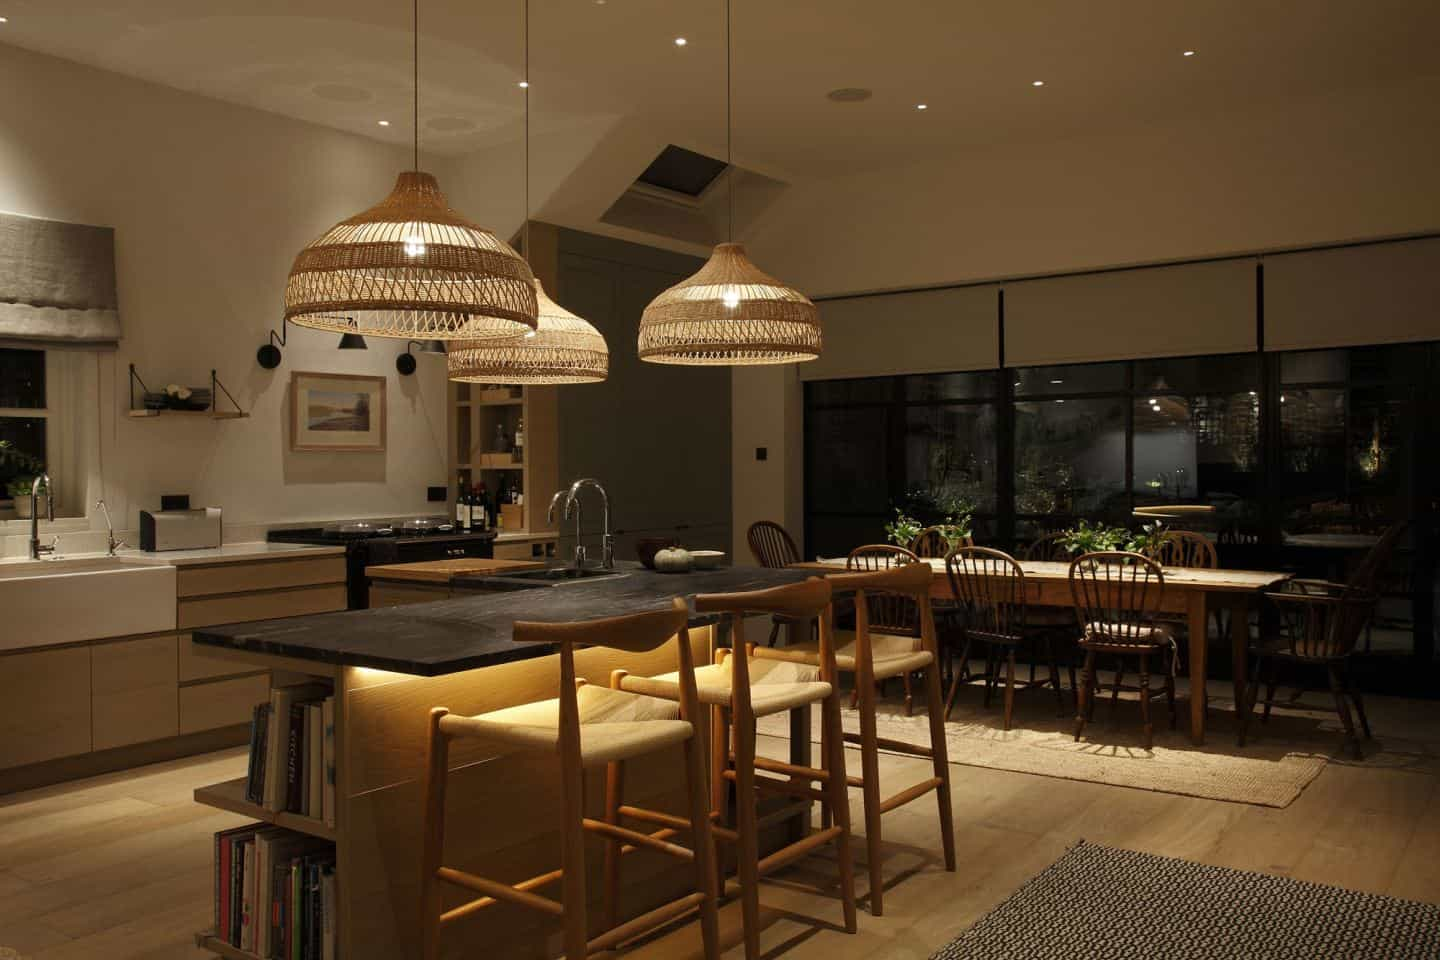 Kitchen design trends - Decorative lighting in a kitchen/dining room. Lighting by John Cullen Lighting